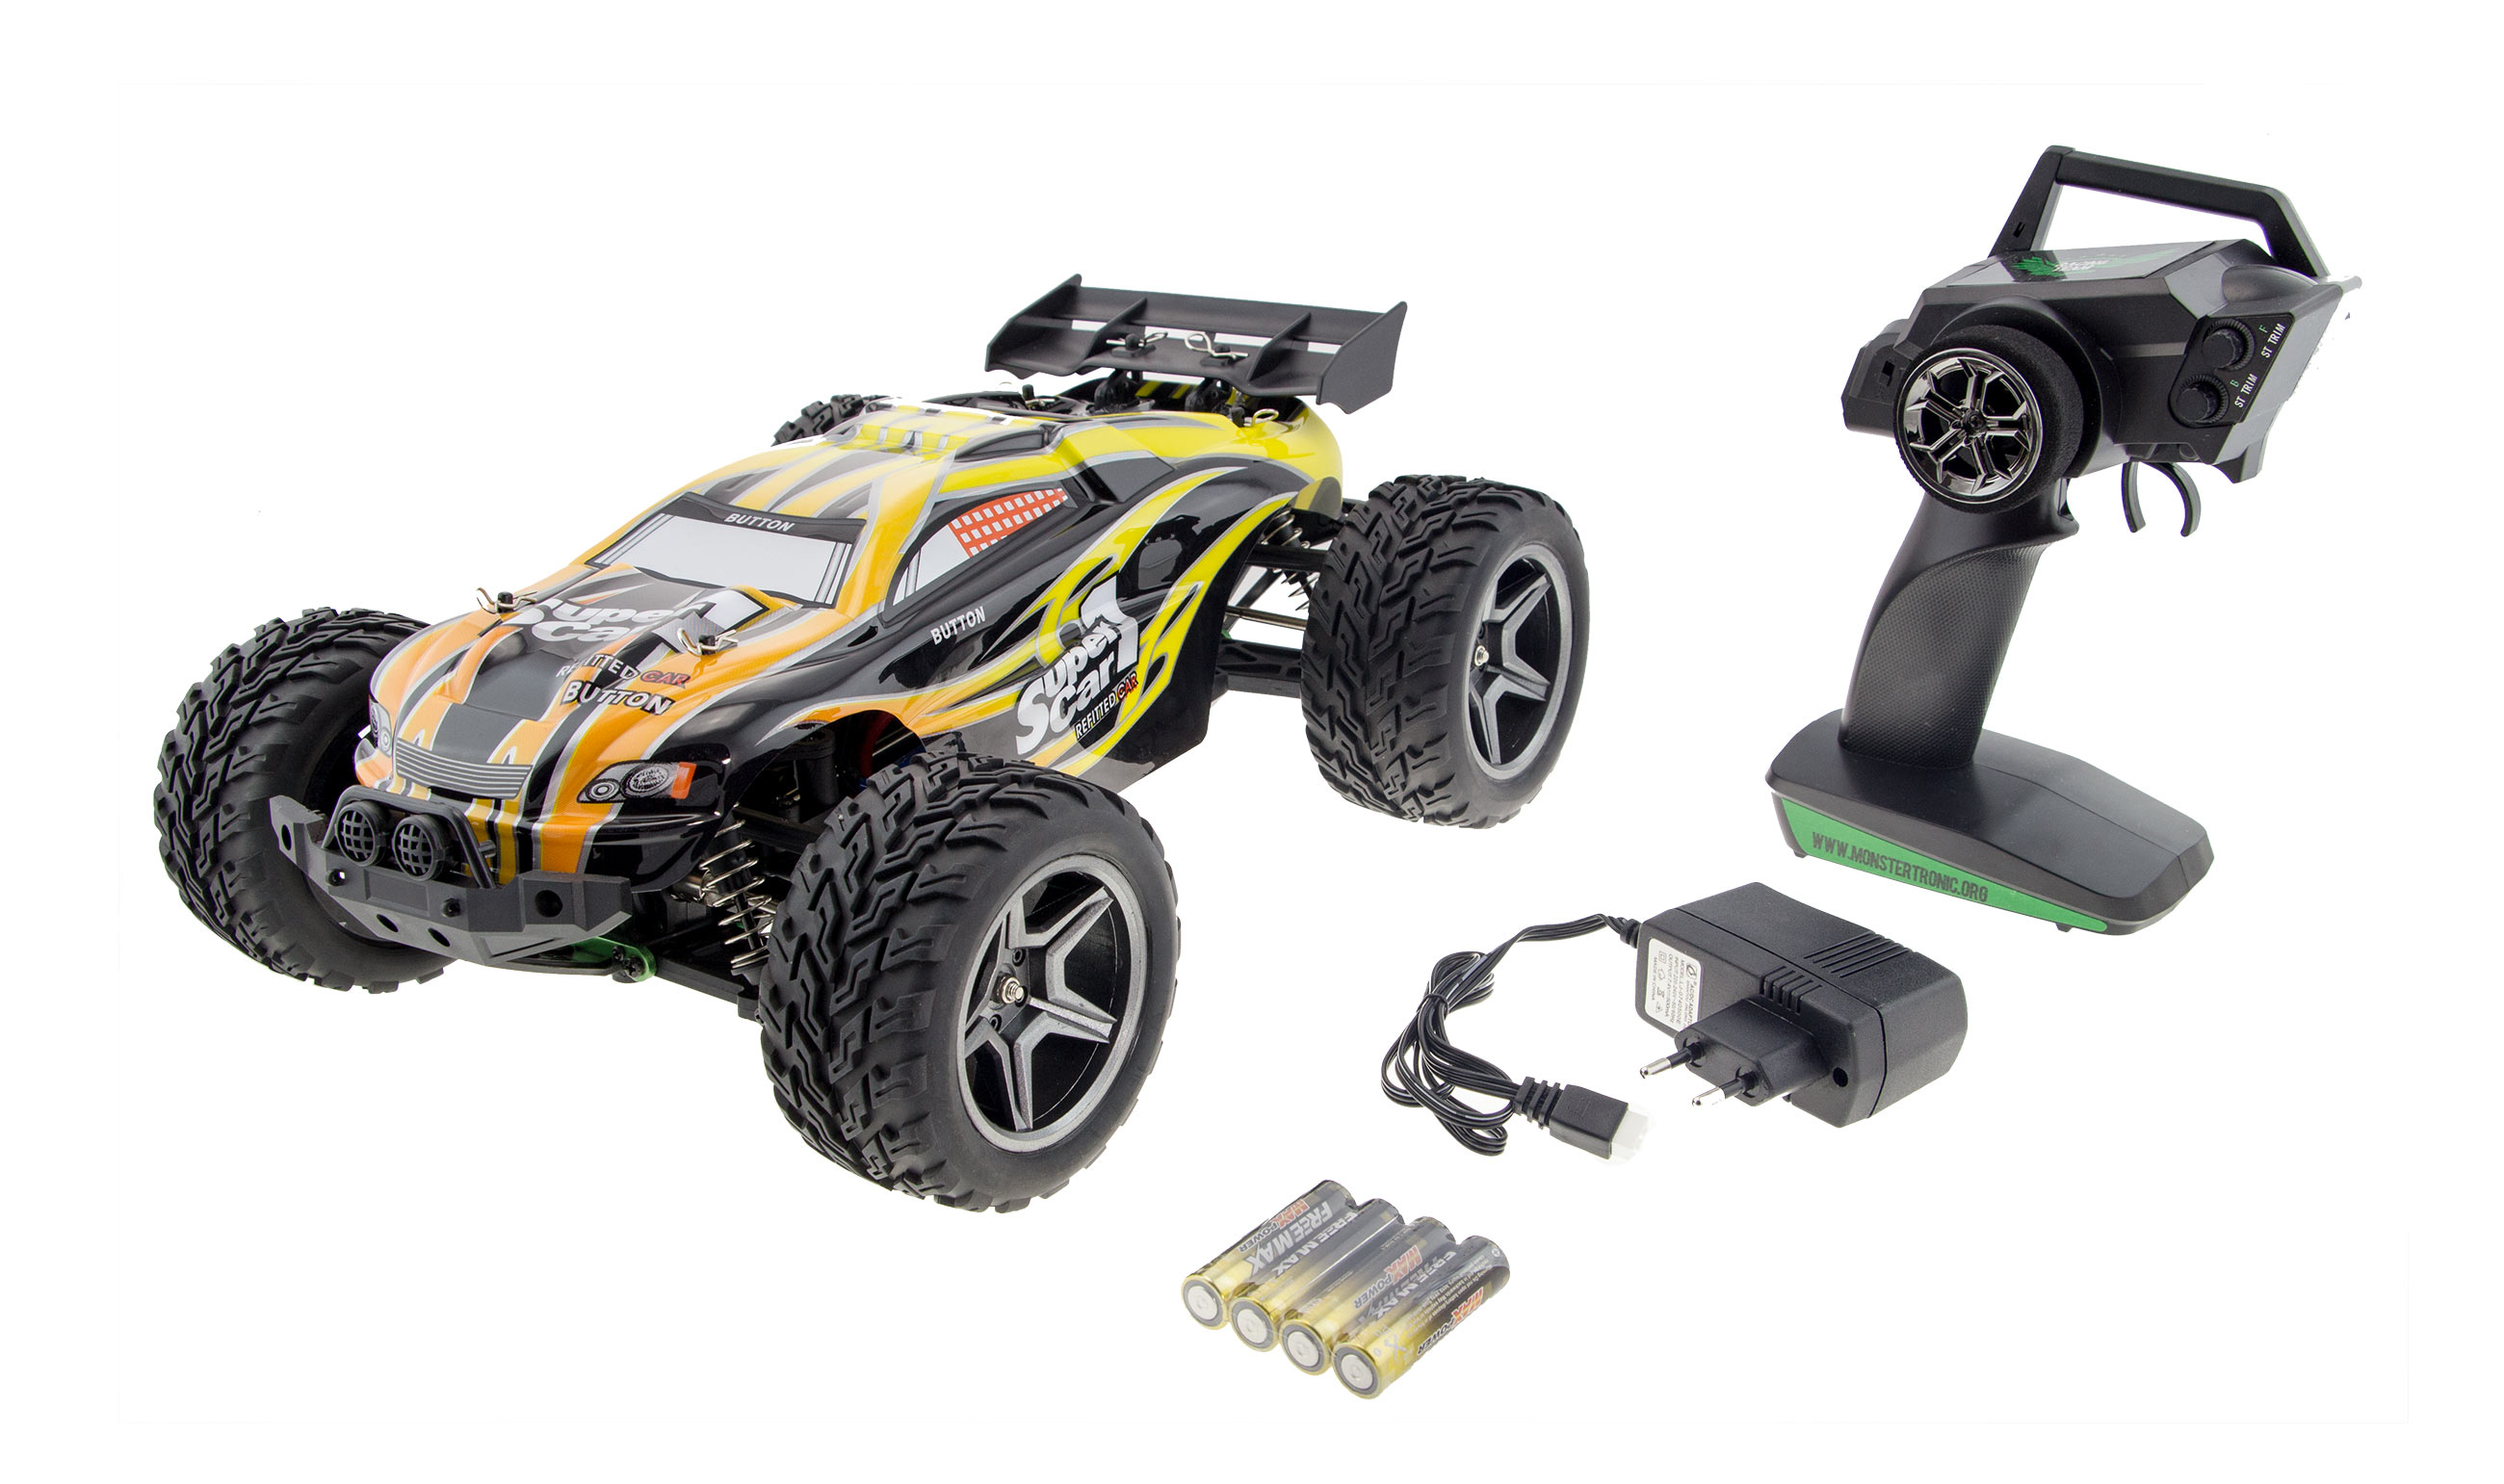 Neuer Low Budget Truggy 1:12